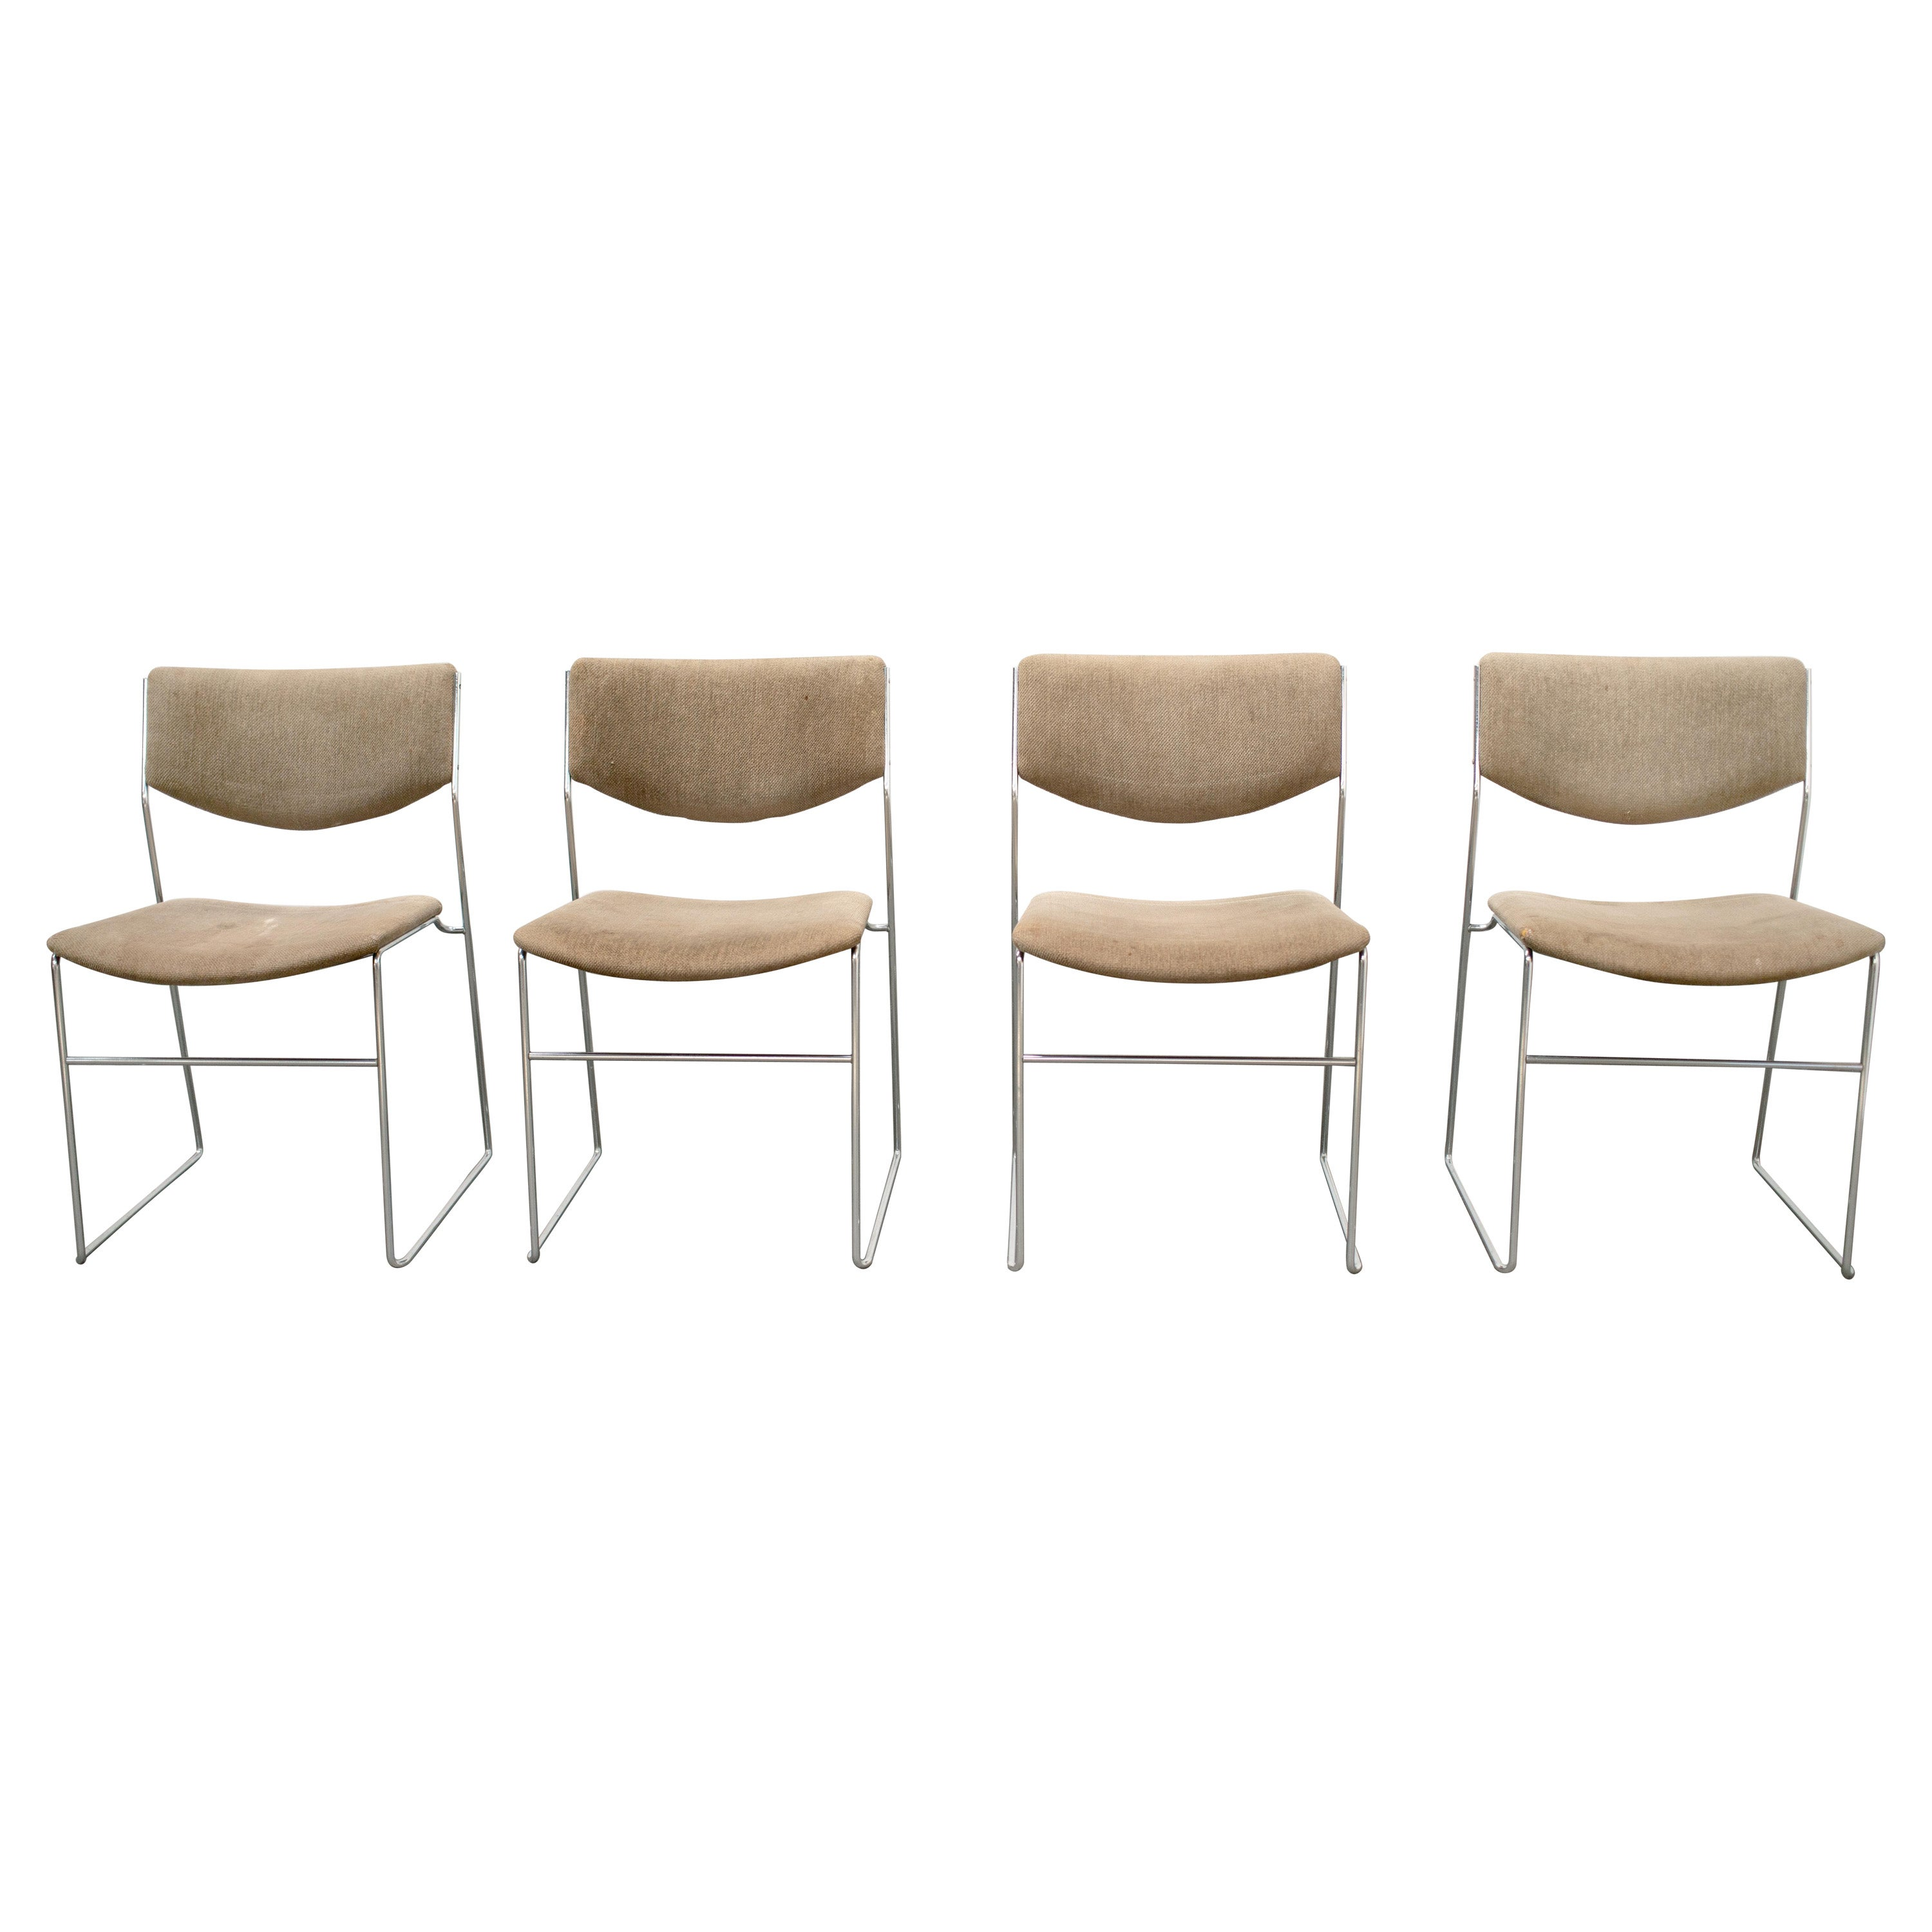 """1970s """"Elle"""" Chairs by Takahama for Gavina, Italy, Set of 4"""